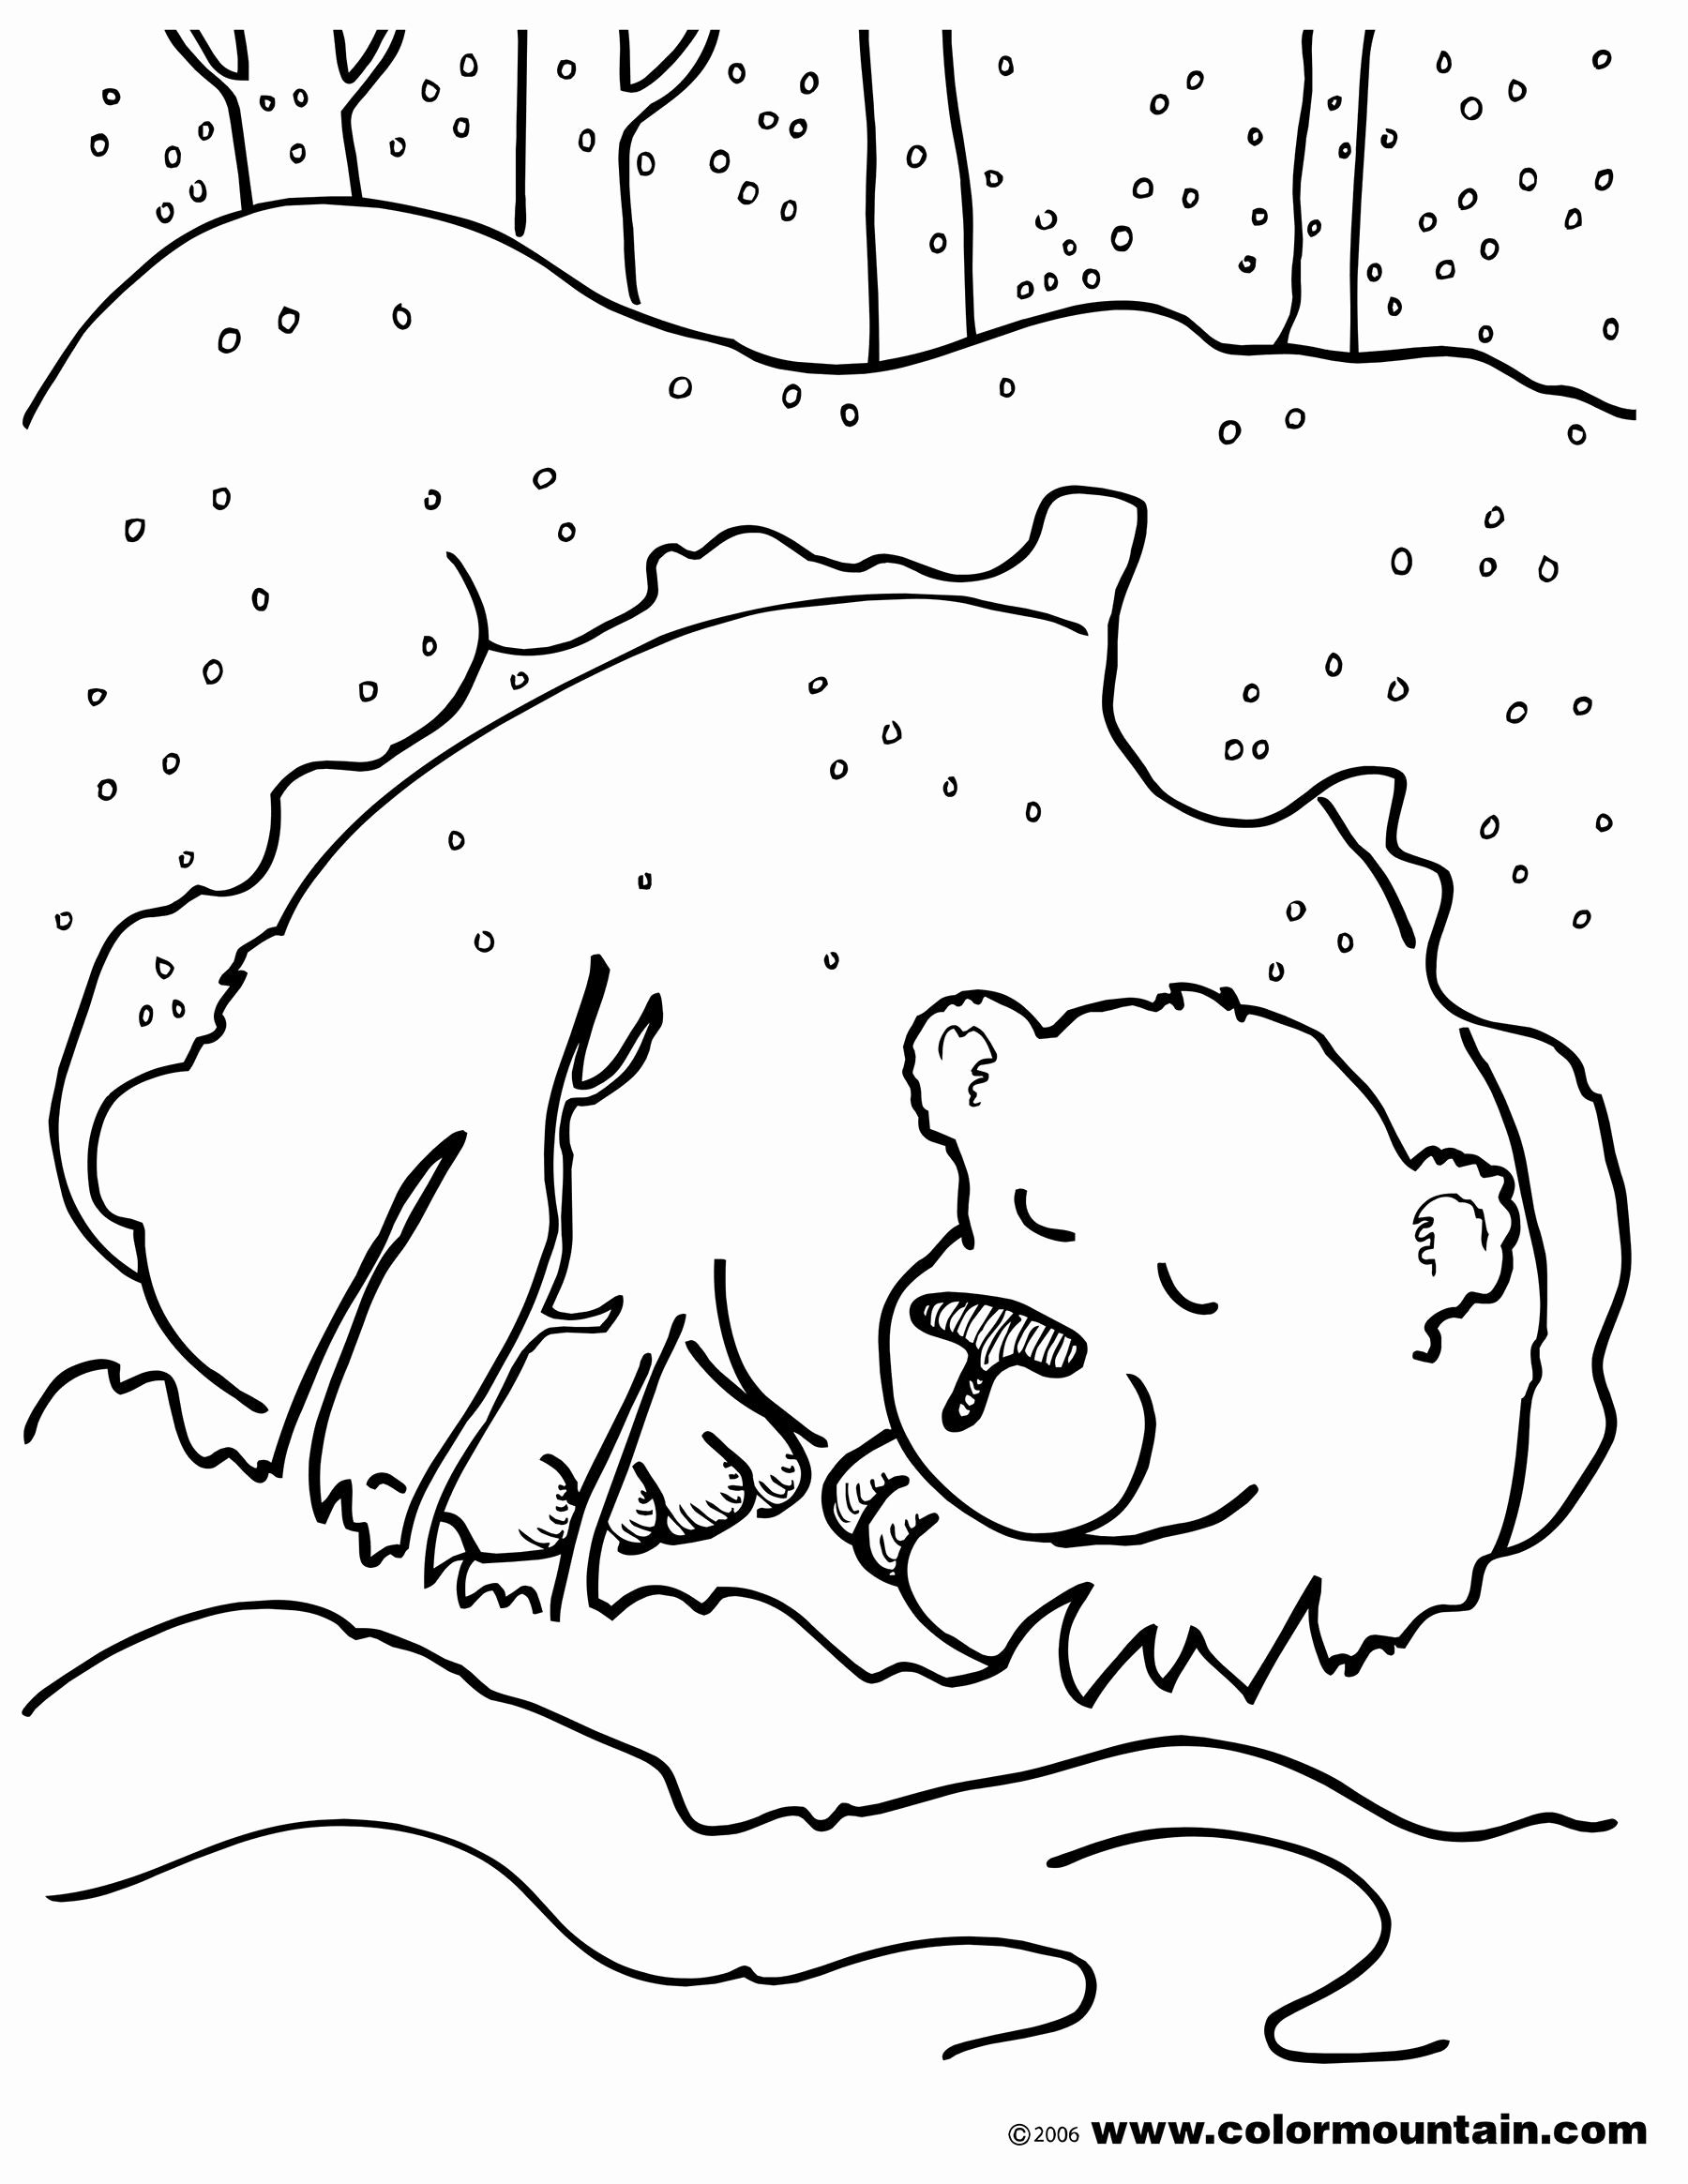 Pin By Jana Cccapkova On January New Yr Hibernation Bear Coloring Pages Coloring Pages Winter Animal Coloring Pages [ 2329 x 1800 Pixel ]